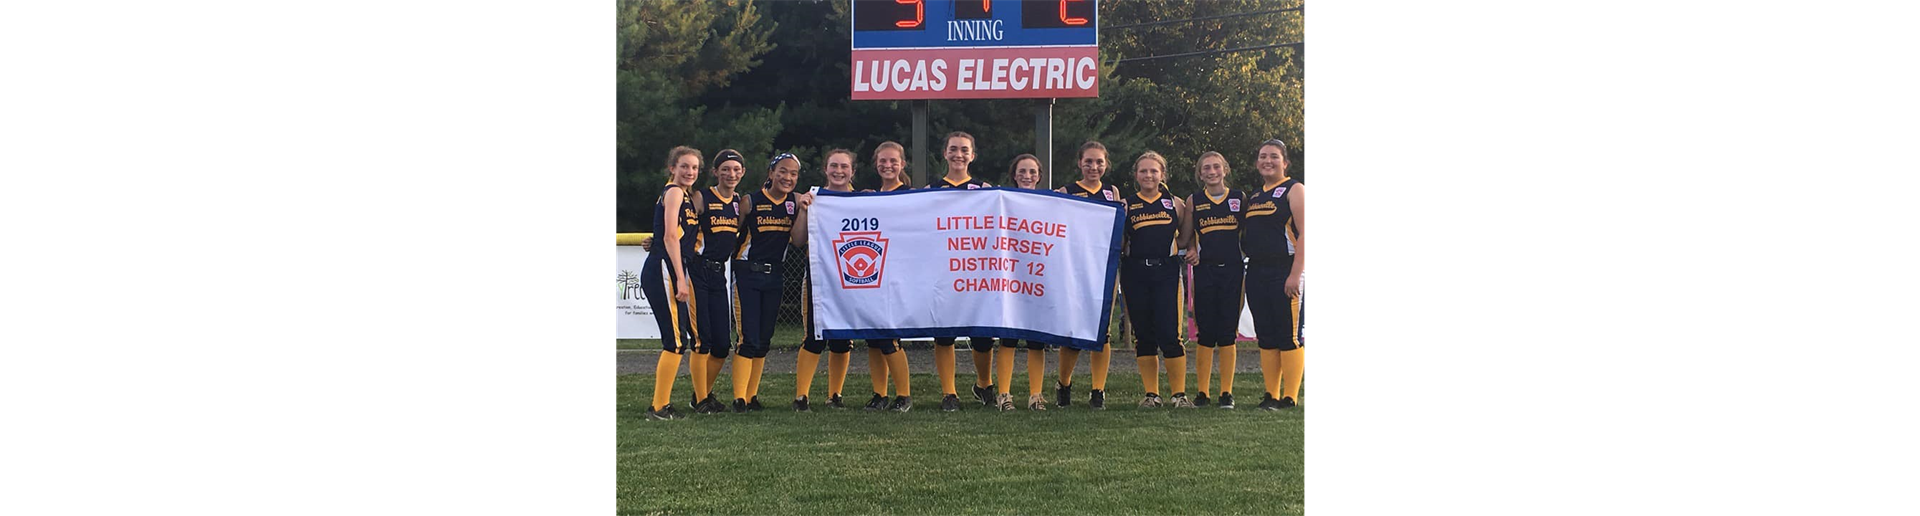 2019 LL Softball 12's NJ State Champions